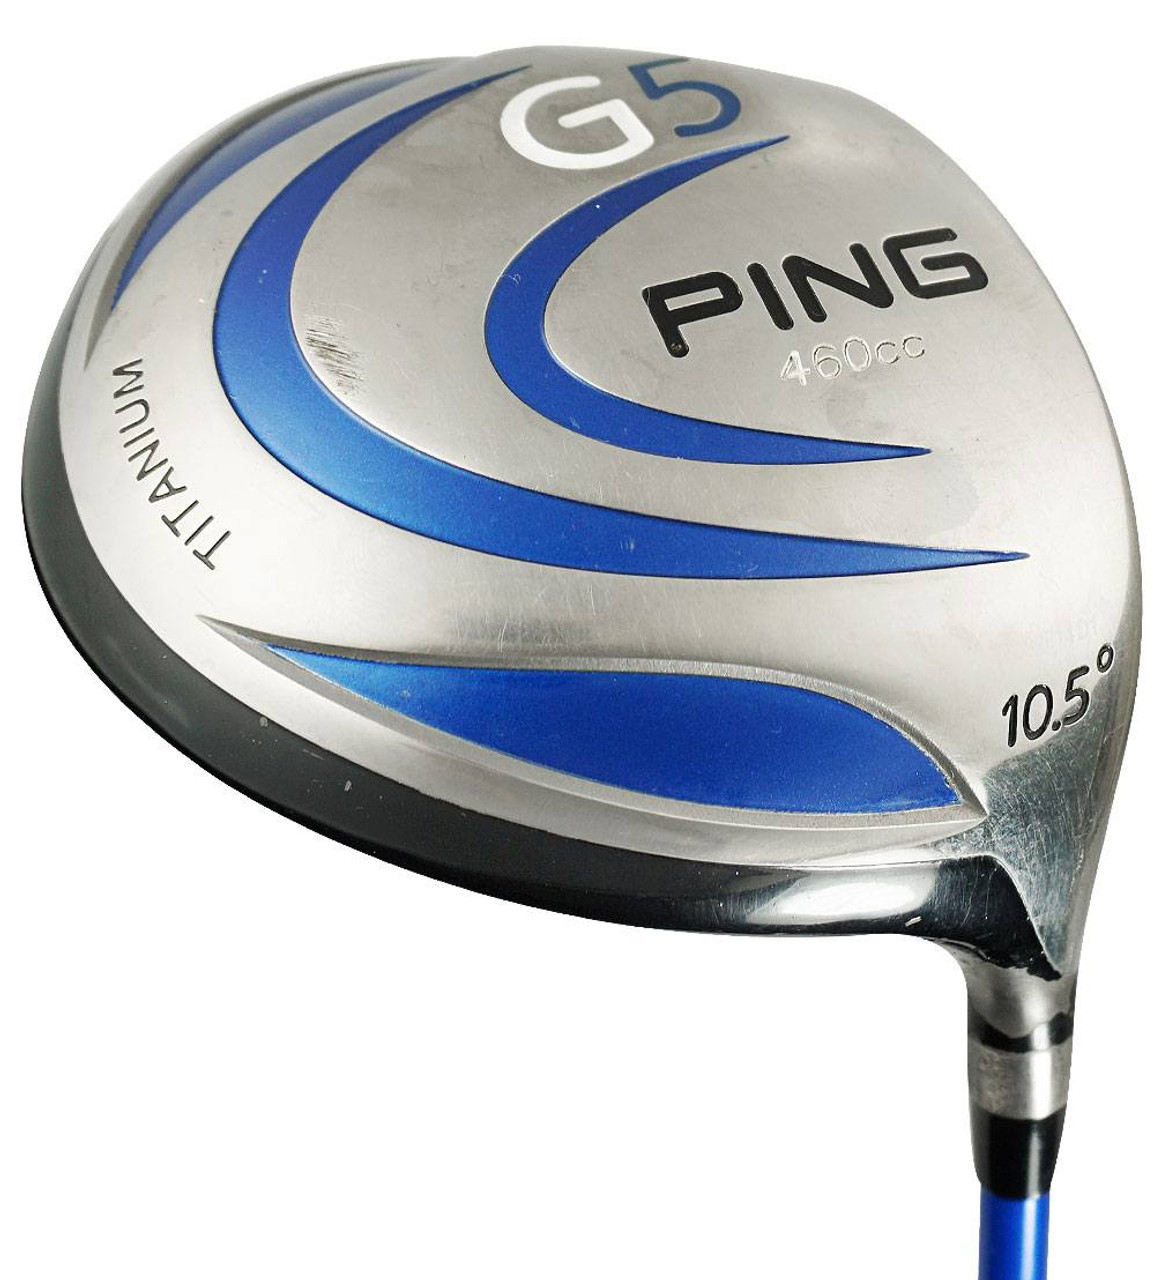 Used ping g5 and g5 offset drivers for sale.